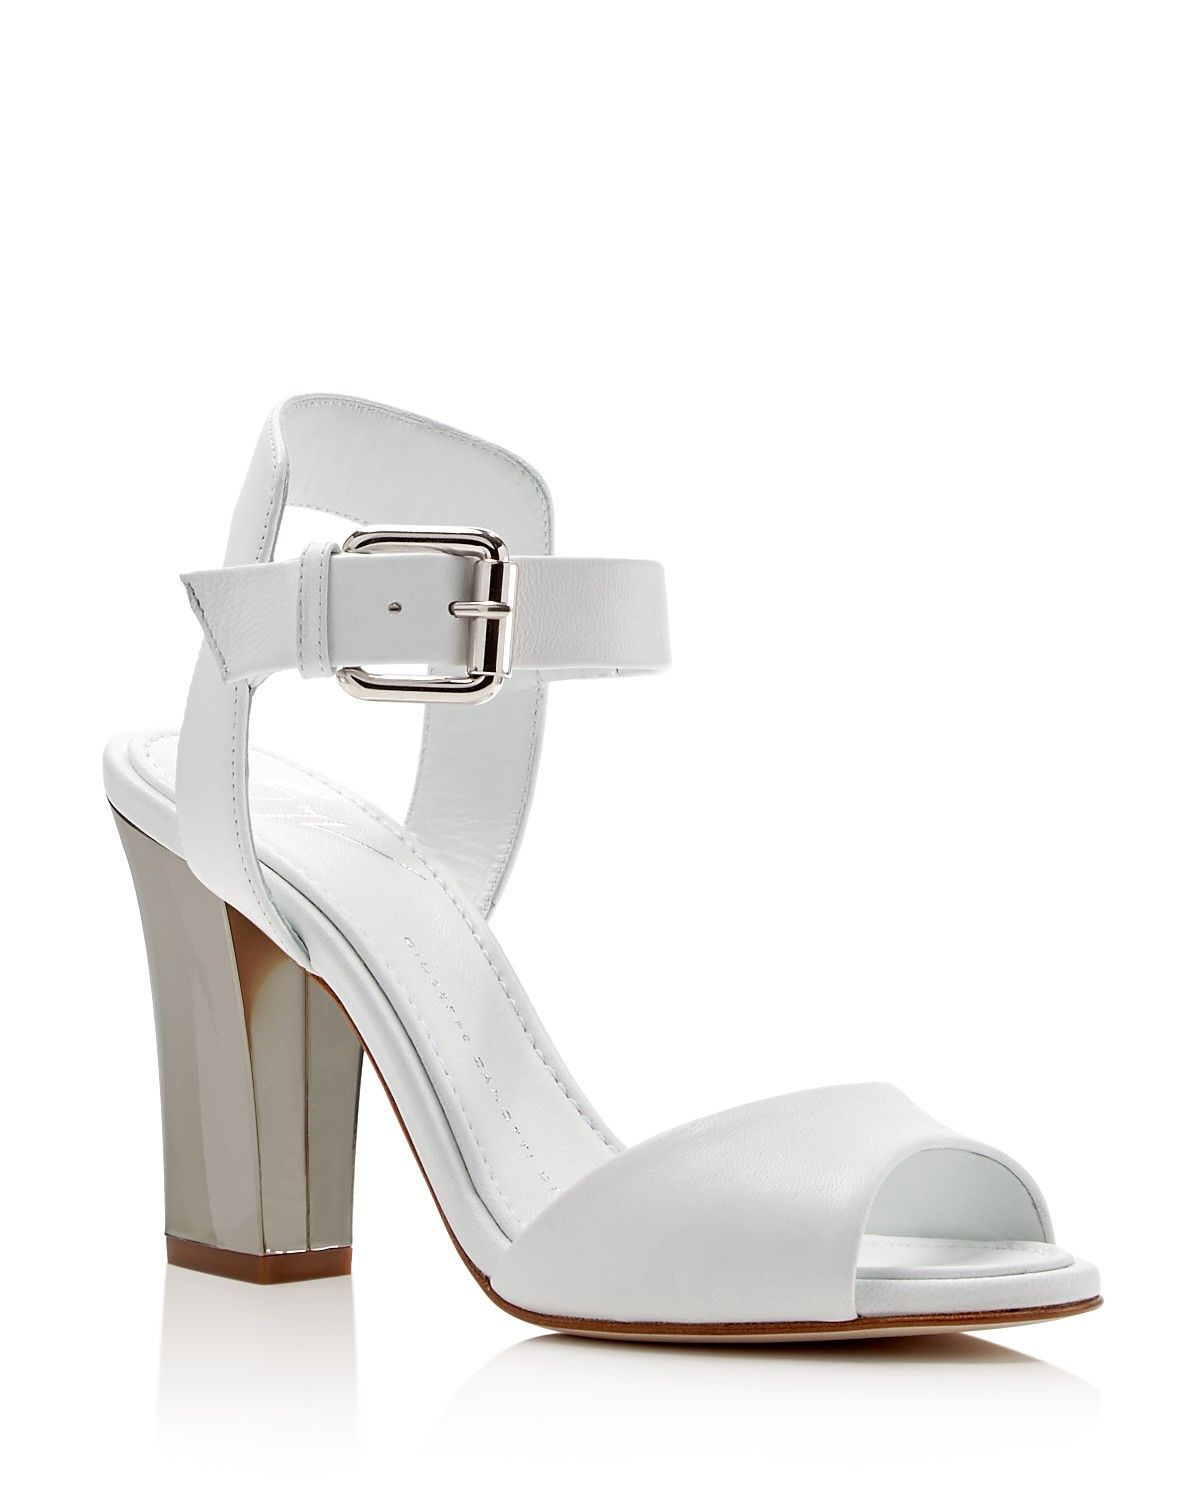 Giuseppe Zanotti Alien Block Heel Sandals - 100% Bloomingdale's Exclusive - Mirrored heels add just the right amount of spark to Giuseppe Zanotti's seasonlessly stylish sandals.